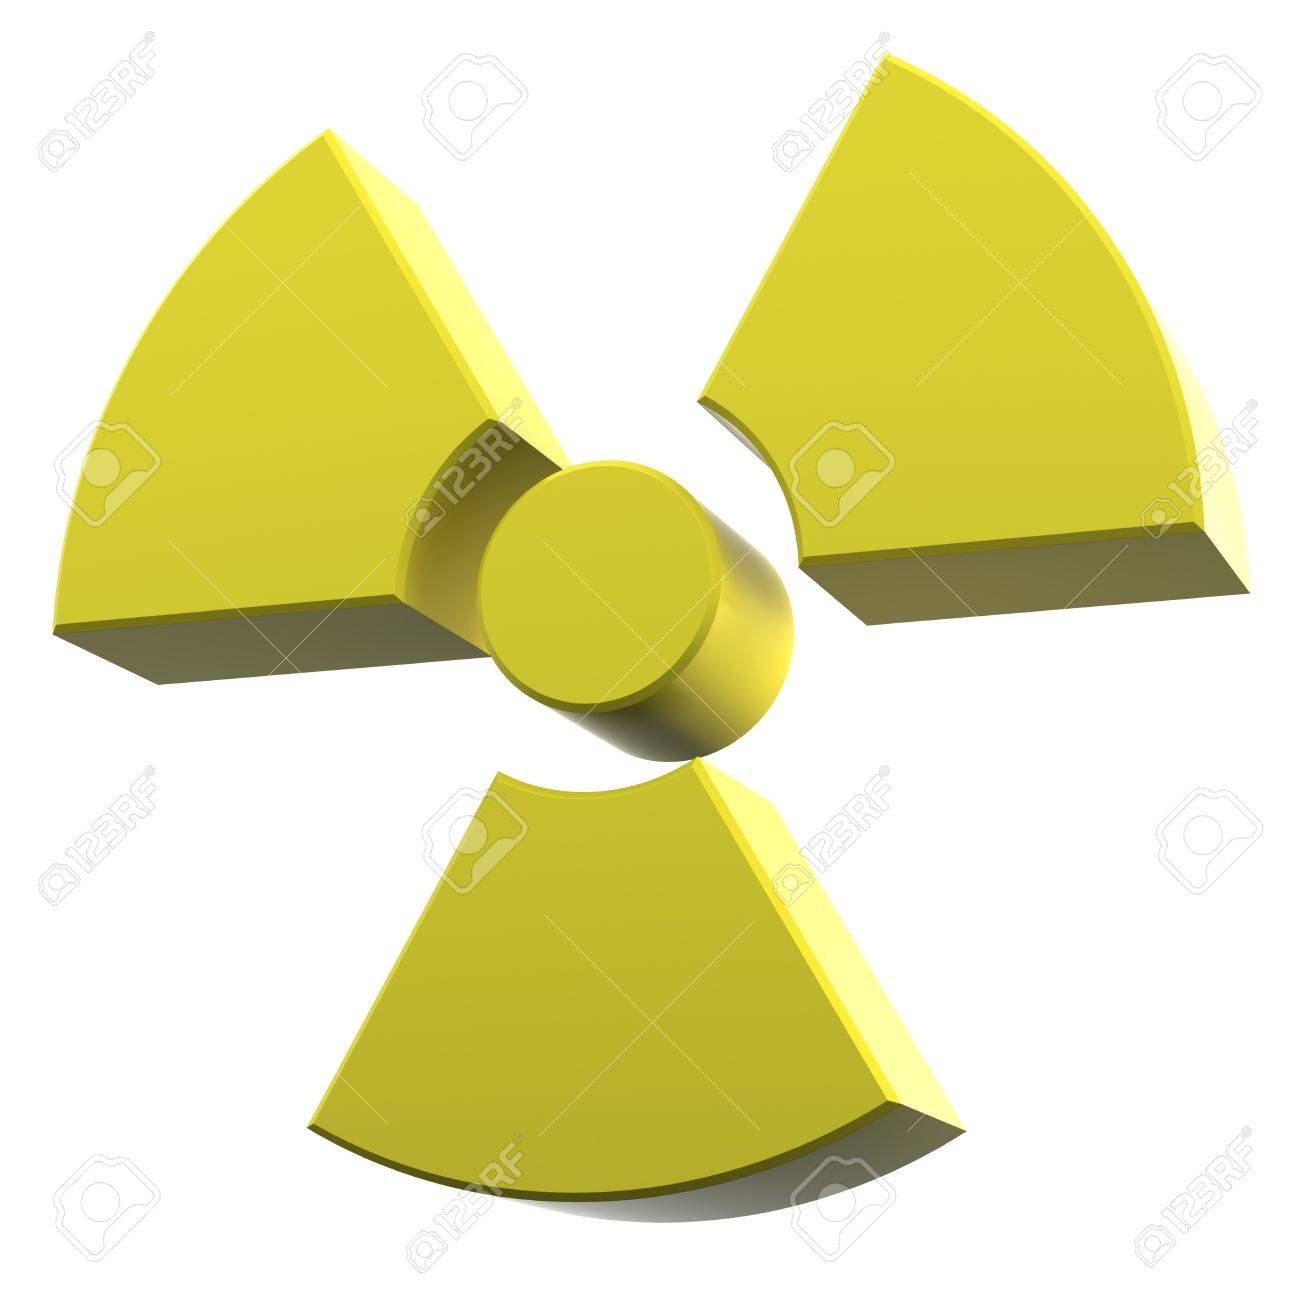 radioactivity logo made of yellow coated material Stock Photo - 11264718